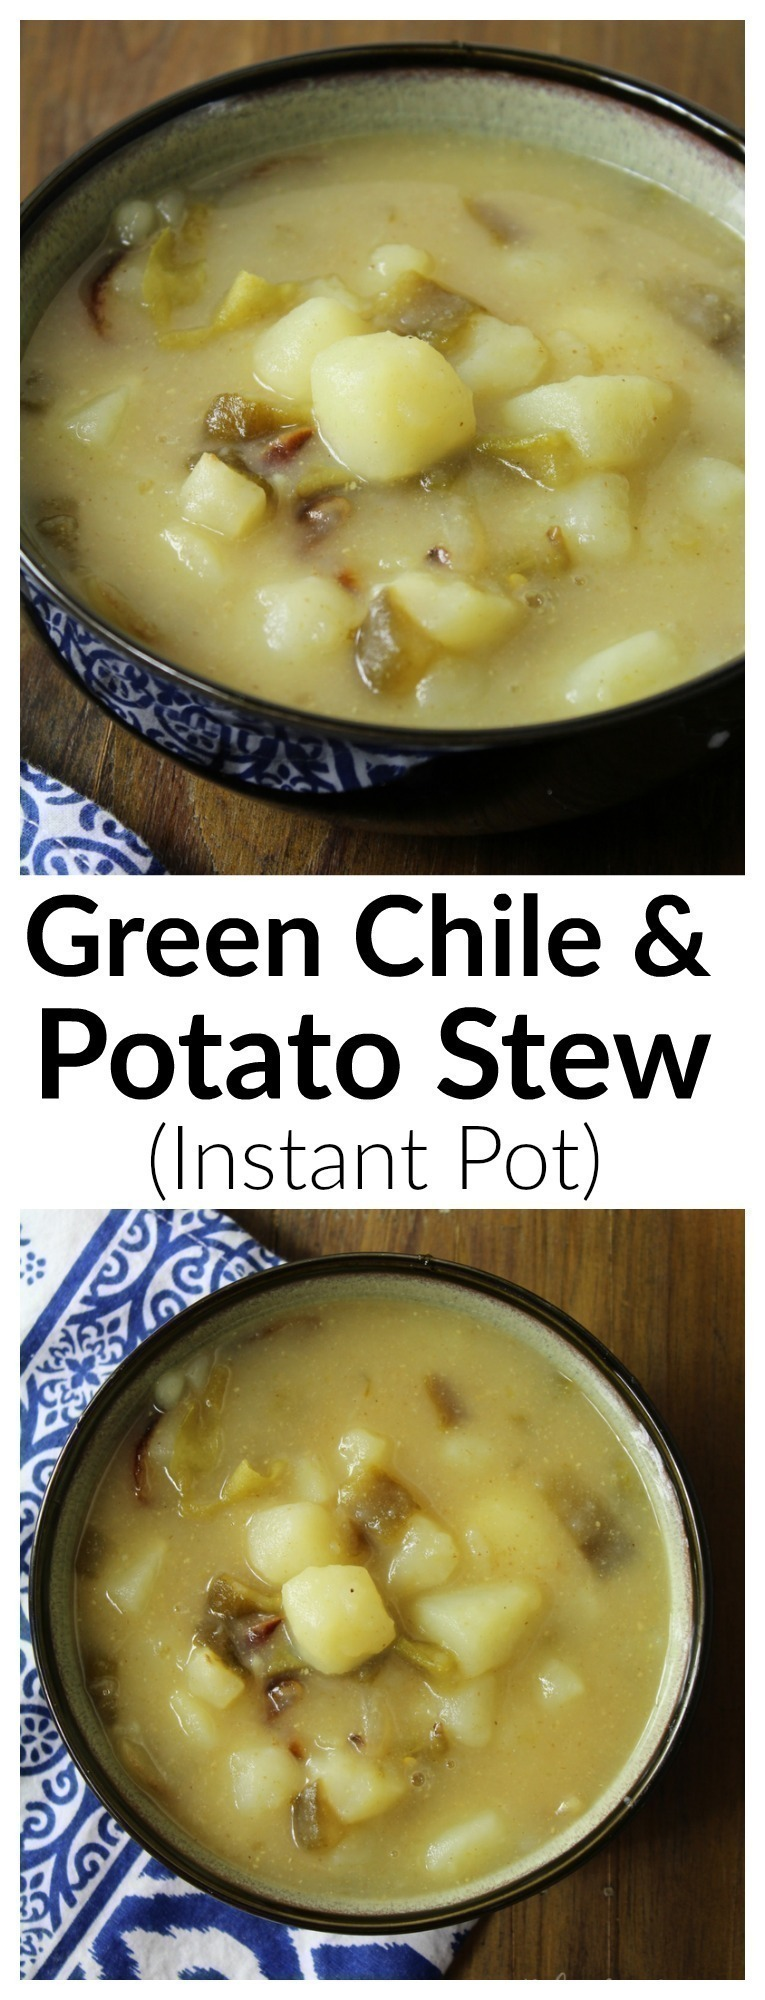 A meatless green chile and potato stew that's filling, flavorful and incredibly easy to make in your Instant Pot.